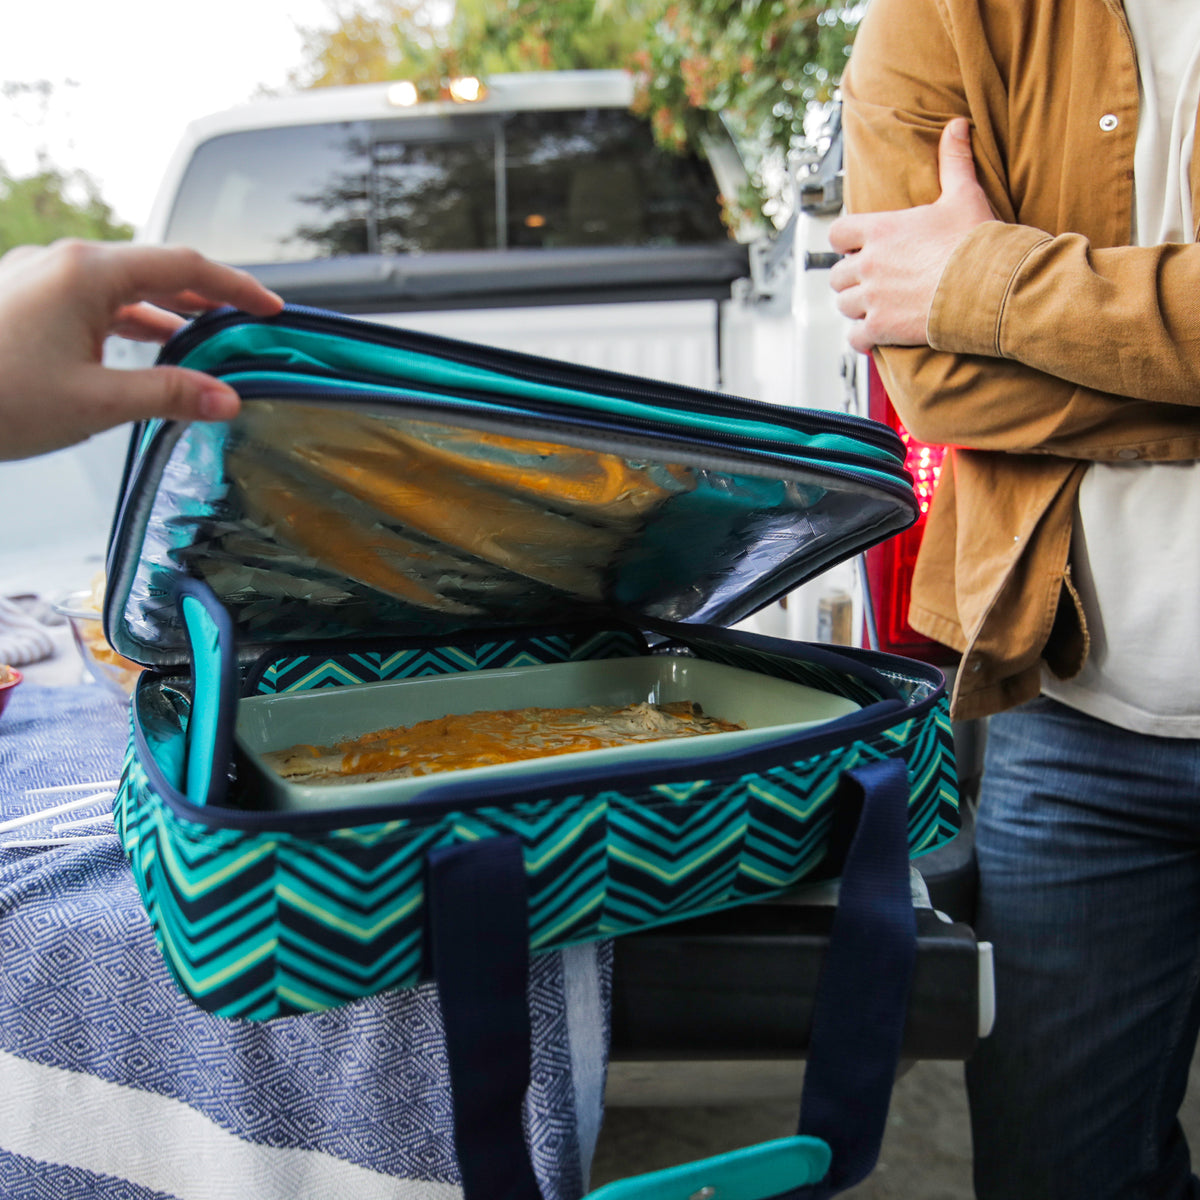 Food Pro Expandable Thermal Carrier - Lifestyle potluck